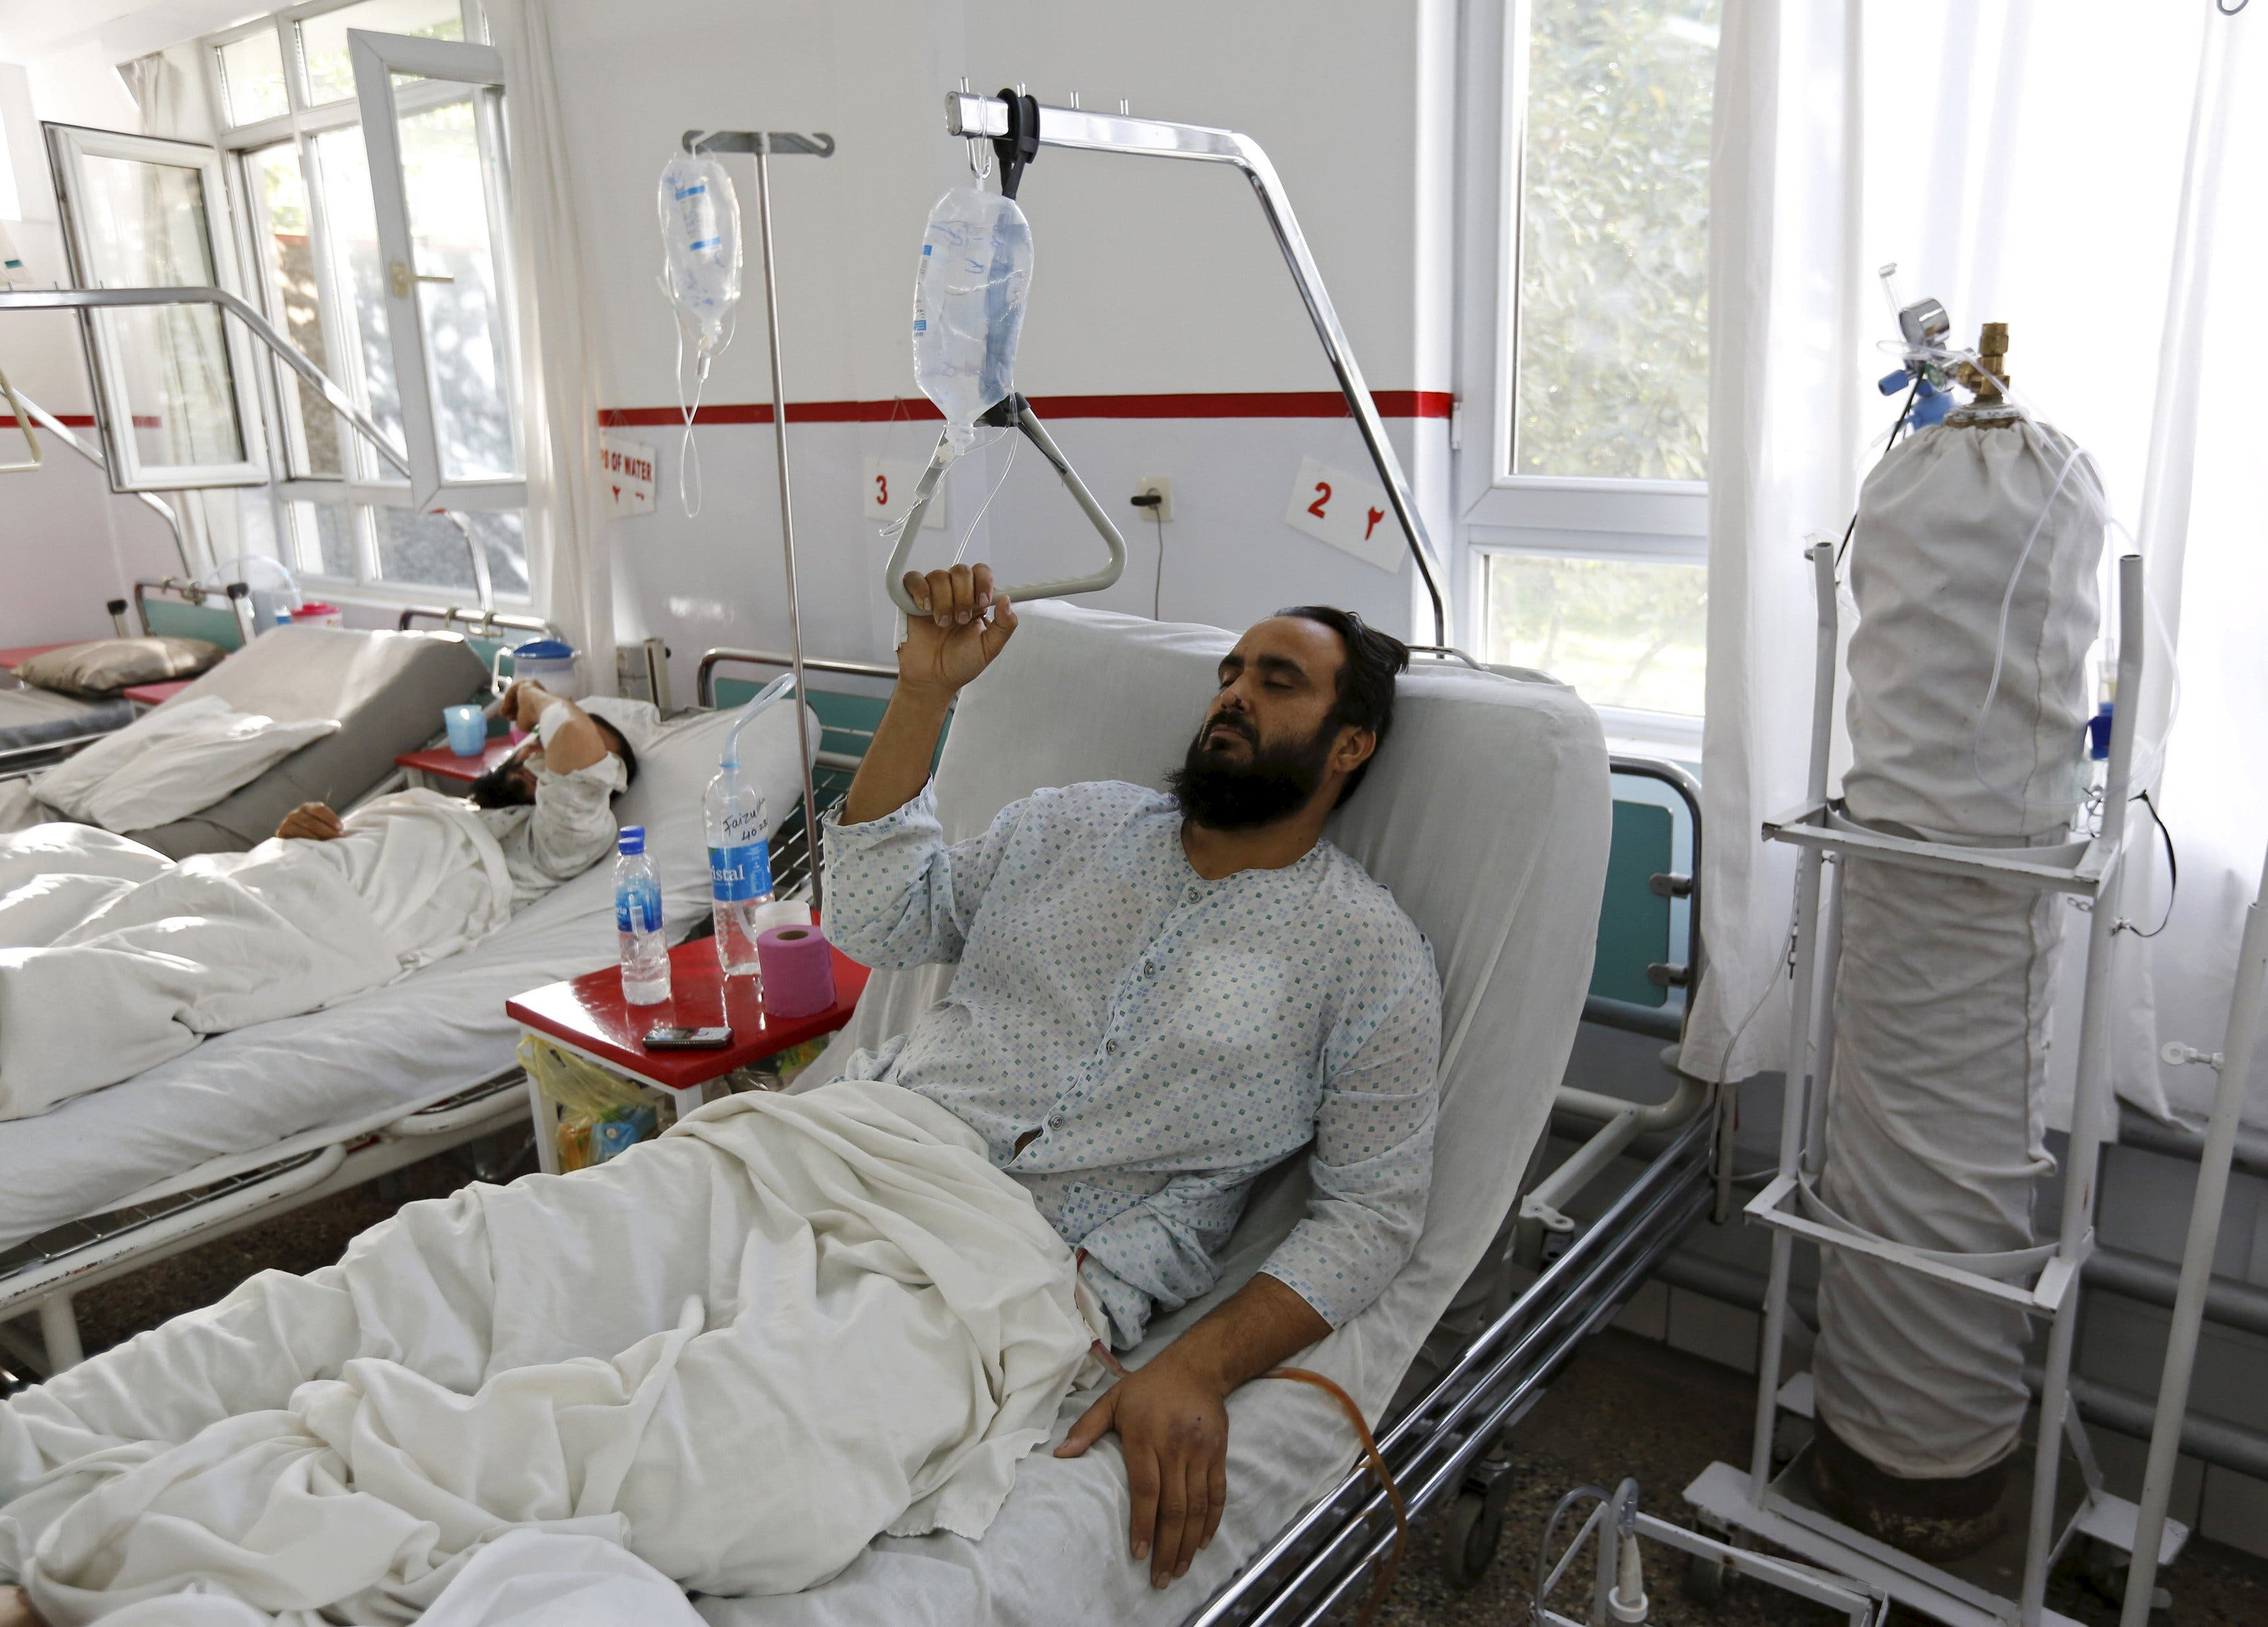 A wounded Afghan man, who survived a U.S. air strike on a Medecins Sans Frontieres (MSF) hospital in Kunduz, receives treatment at the Emergency Hospital in Kabul October 8, 2015. The U.S. air strike in Afghanistan that killed at least 22 patients and staff at the Medecins Sans Frontieres hospital wasn't the first time the escalating war has affected an aid-run medical facility. There have even been instances since. Foreign aid workers and Afghan colleagues shaken by the weekend tragedy in Kunduz, one of the worst incidents of its kind in the 14-year war, say increased violence around the country makes it harder to provide basic services in a country where NGOs help provide the vast majority of healthcare. To match Insight AFGHANISTAN-HEALTH/VIOLENCE REUTERS/Mohammad Ismail